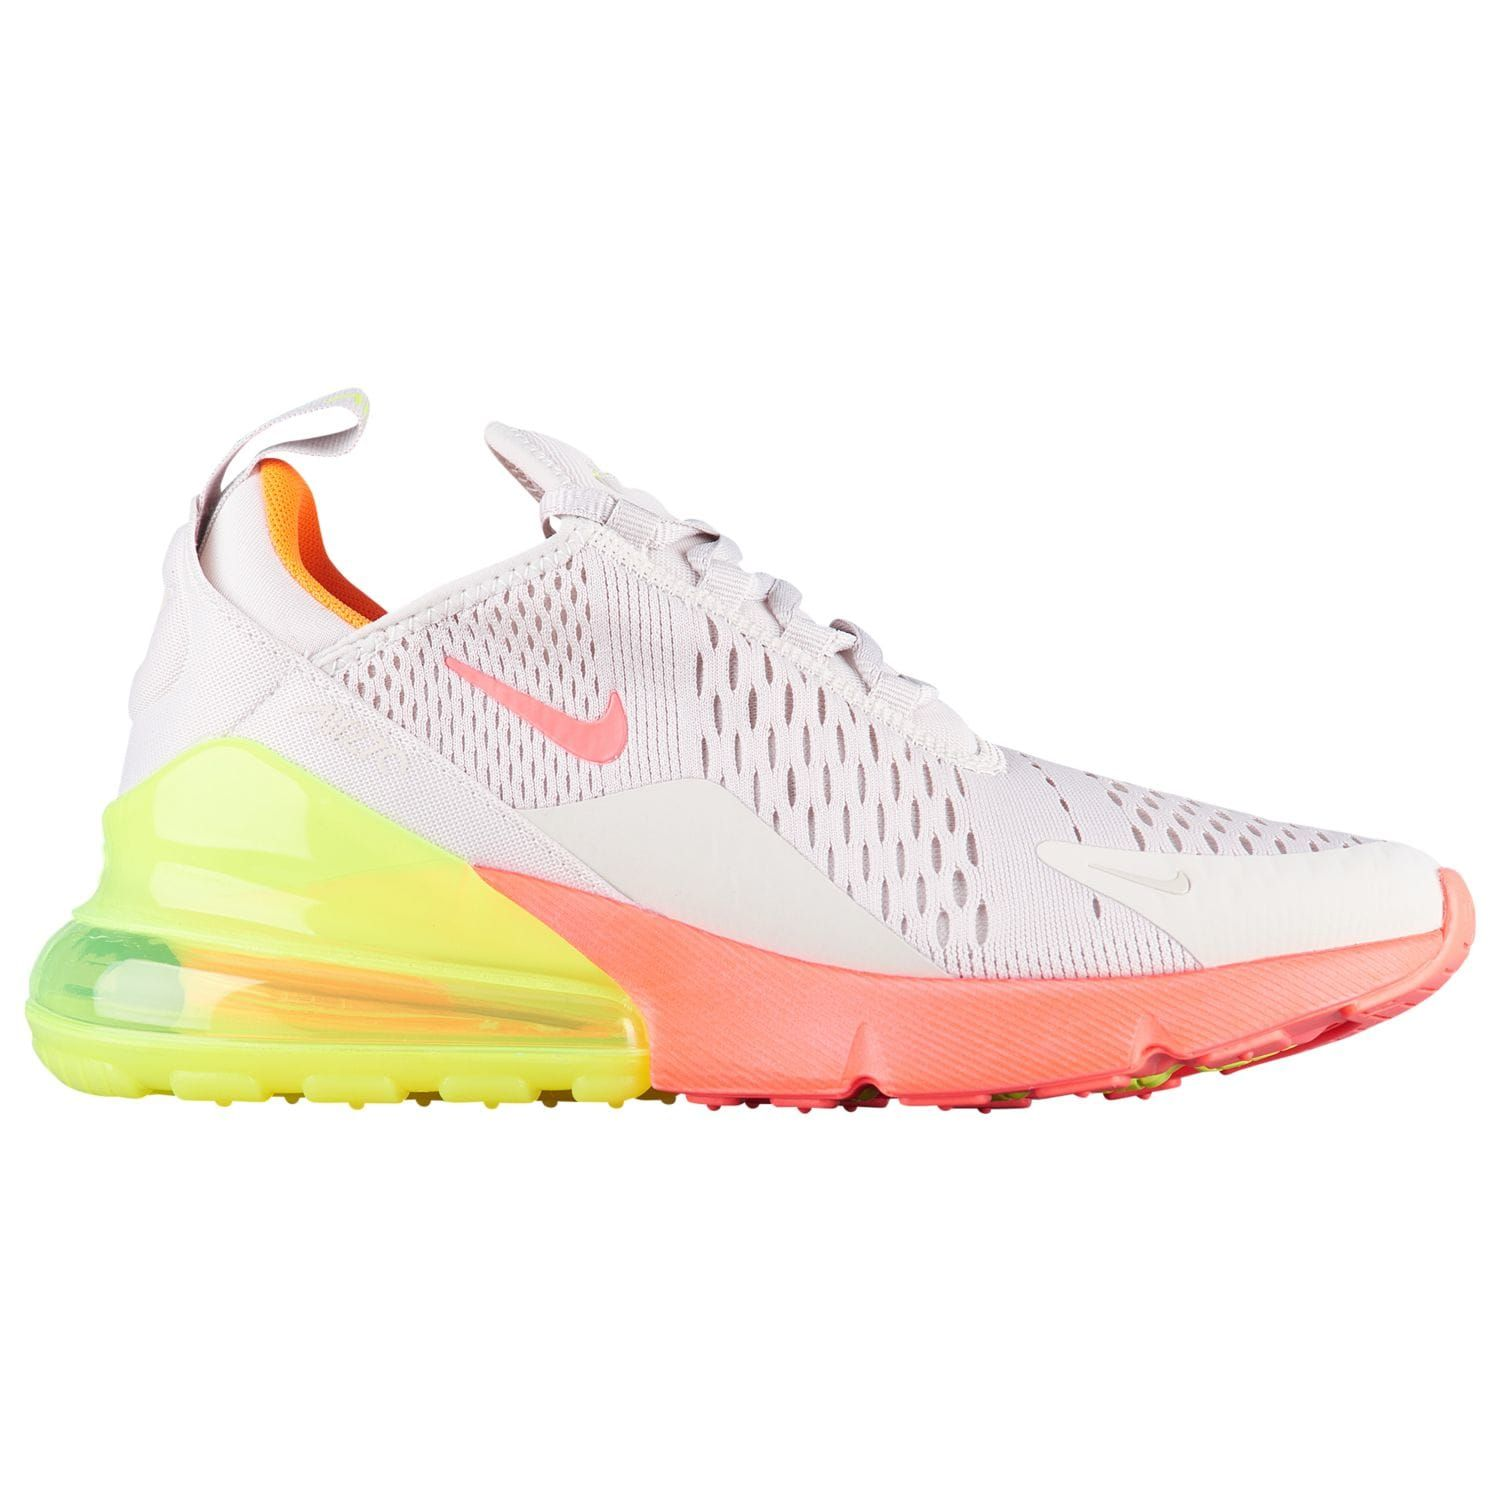 Nike Air Max 270 Women's in 2019 | Air max 270, Nike air